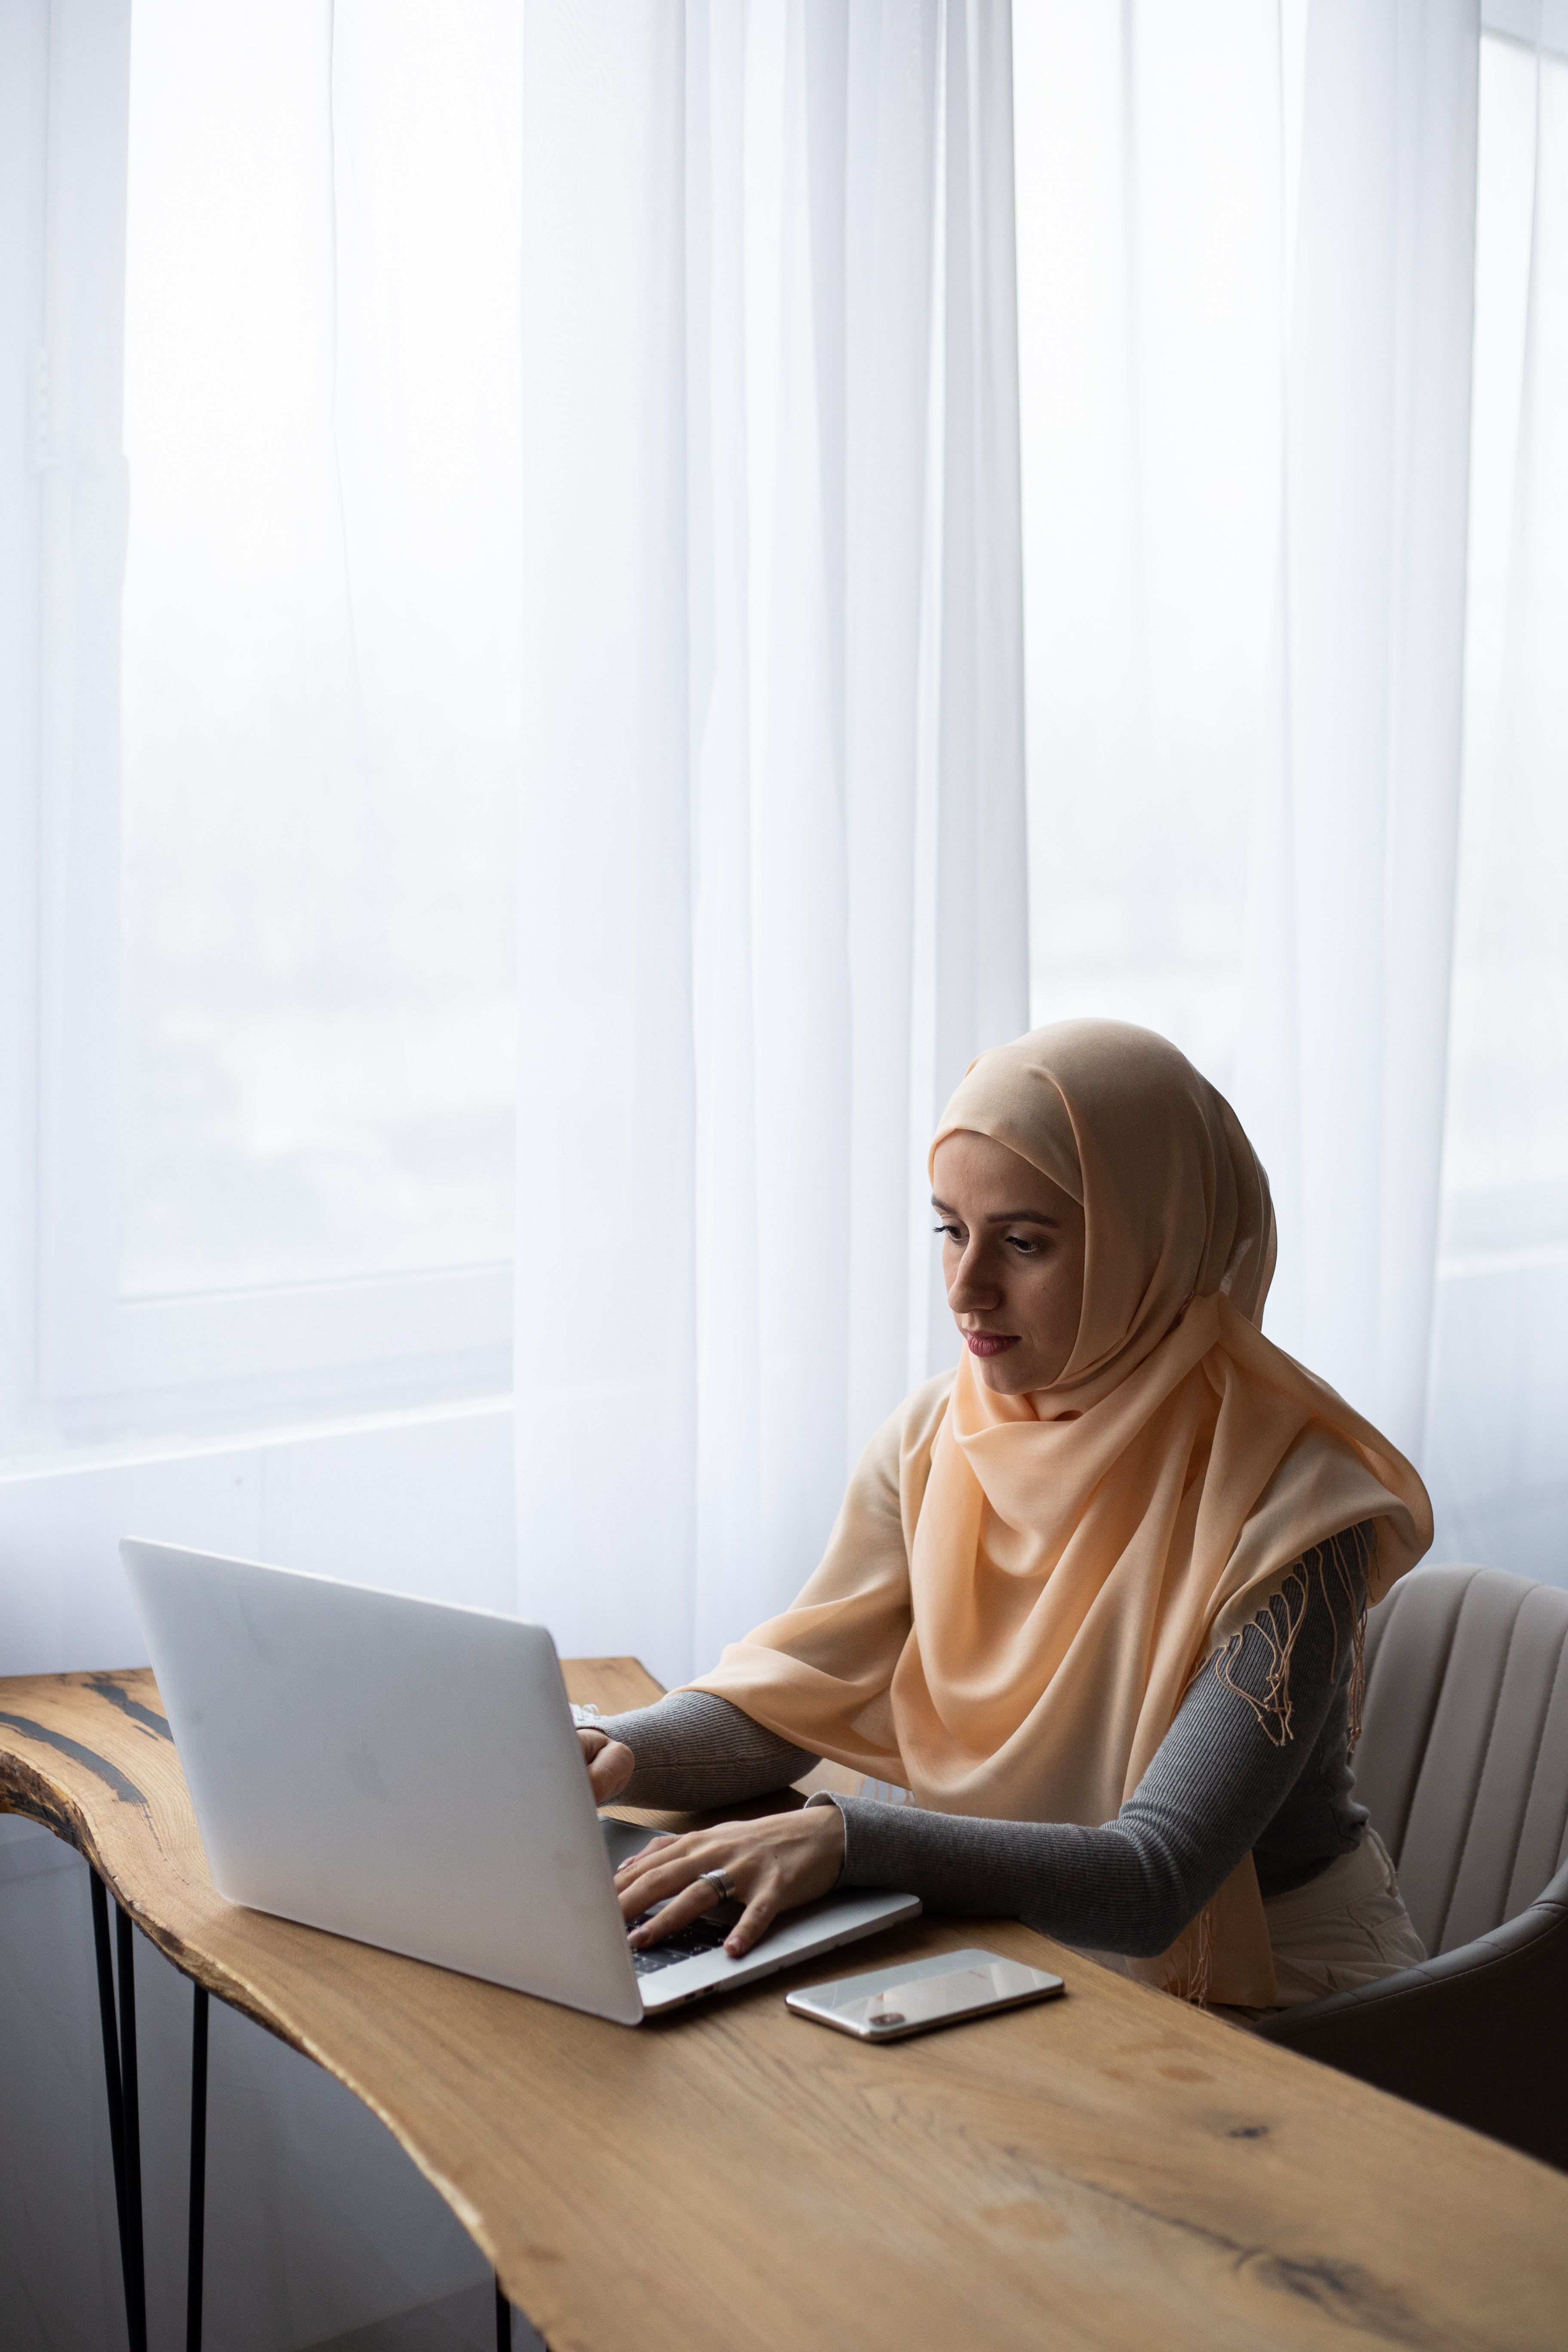 5 things to look for in Online English Courses